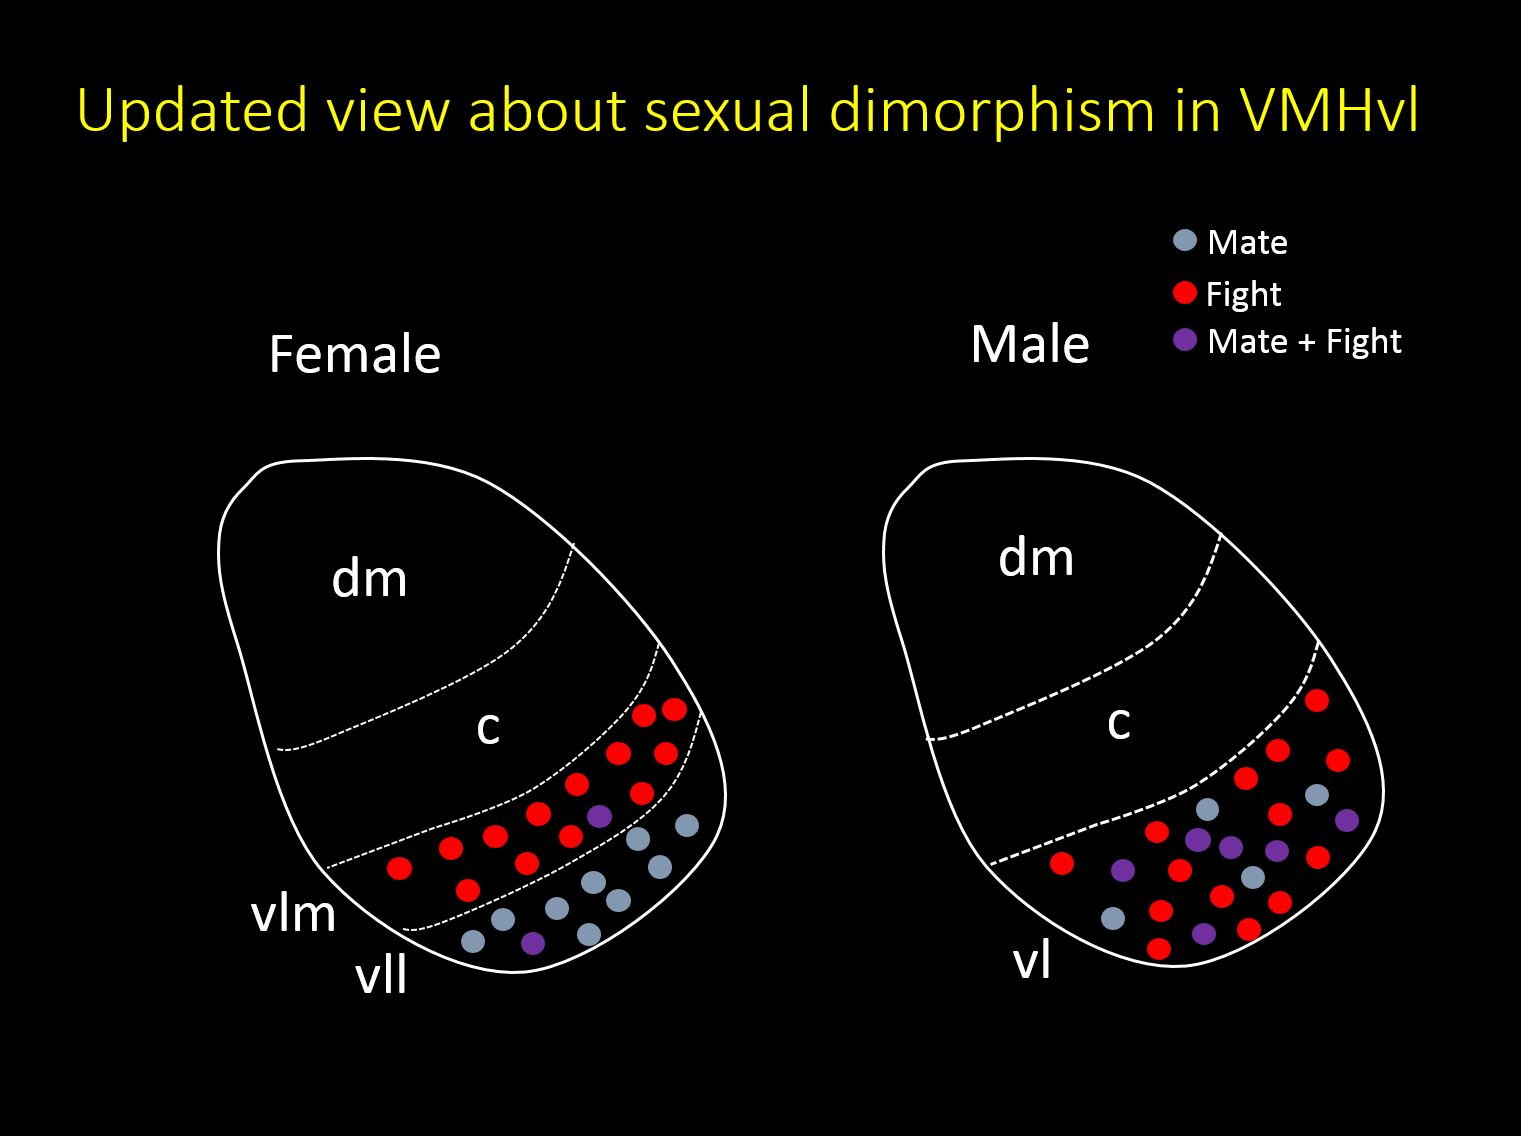 Sexual Dimorphism in VMHvl